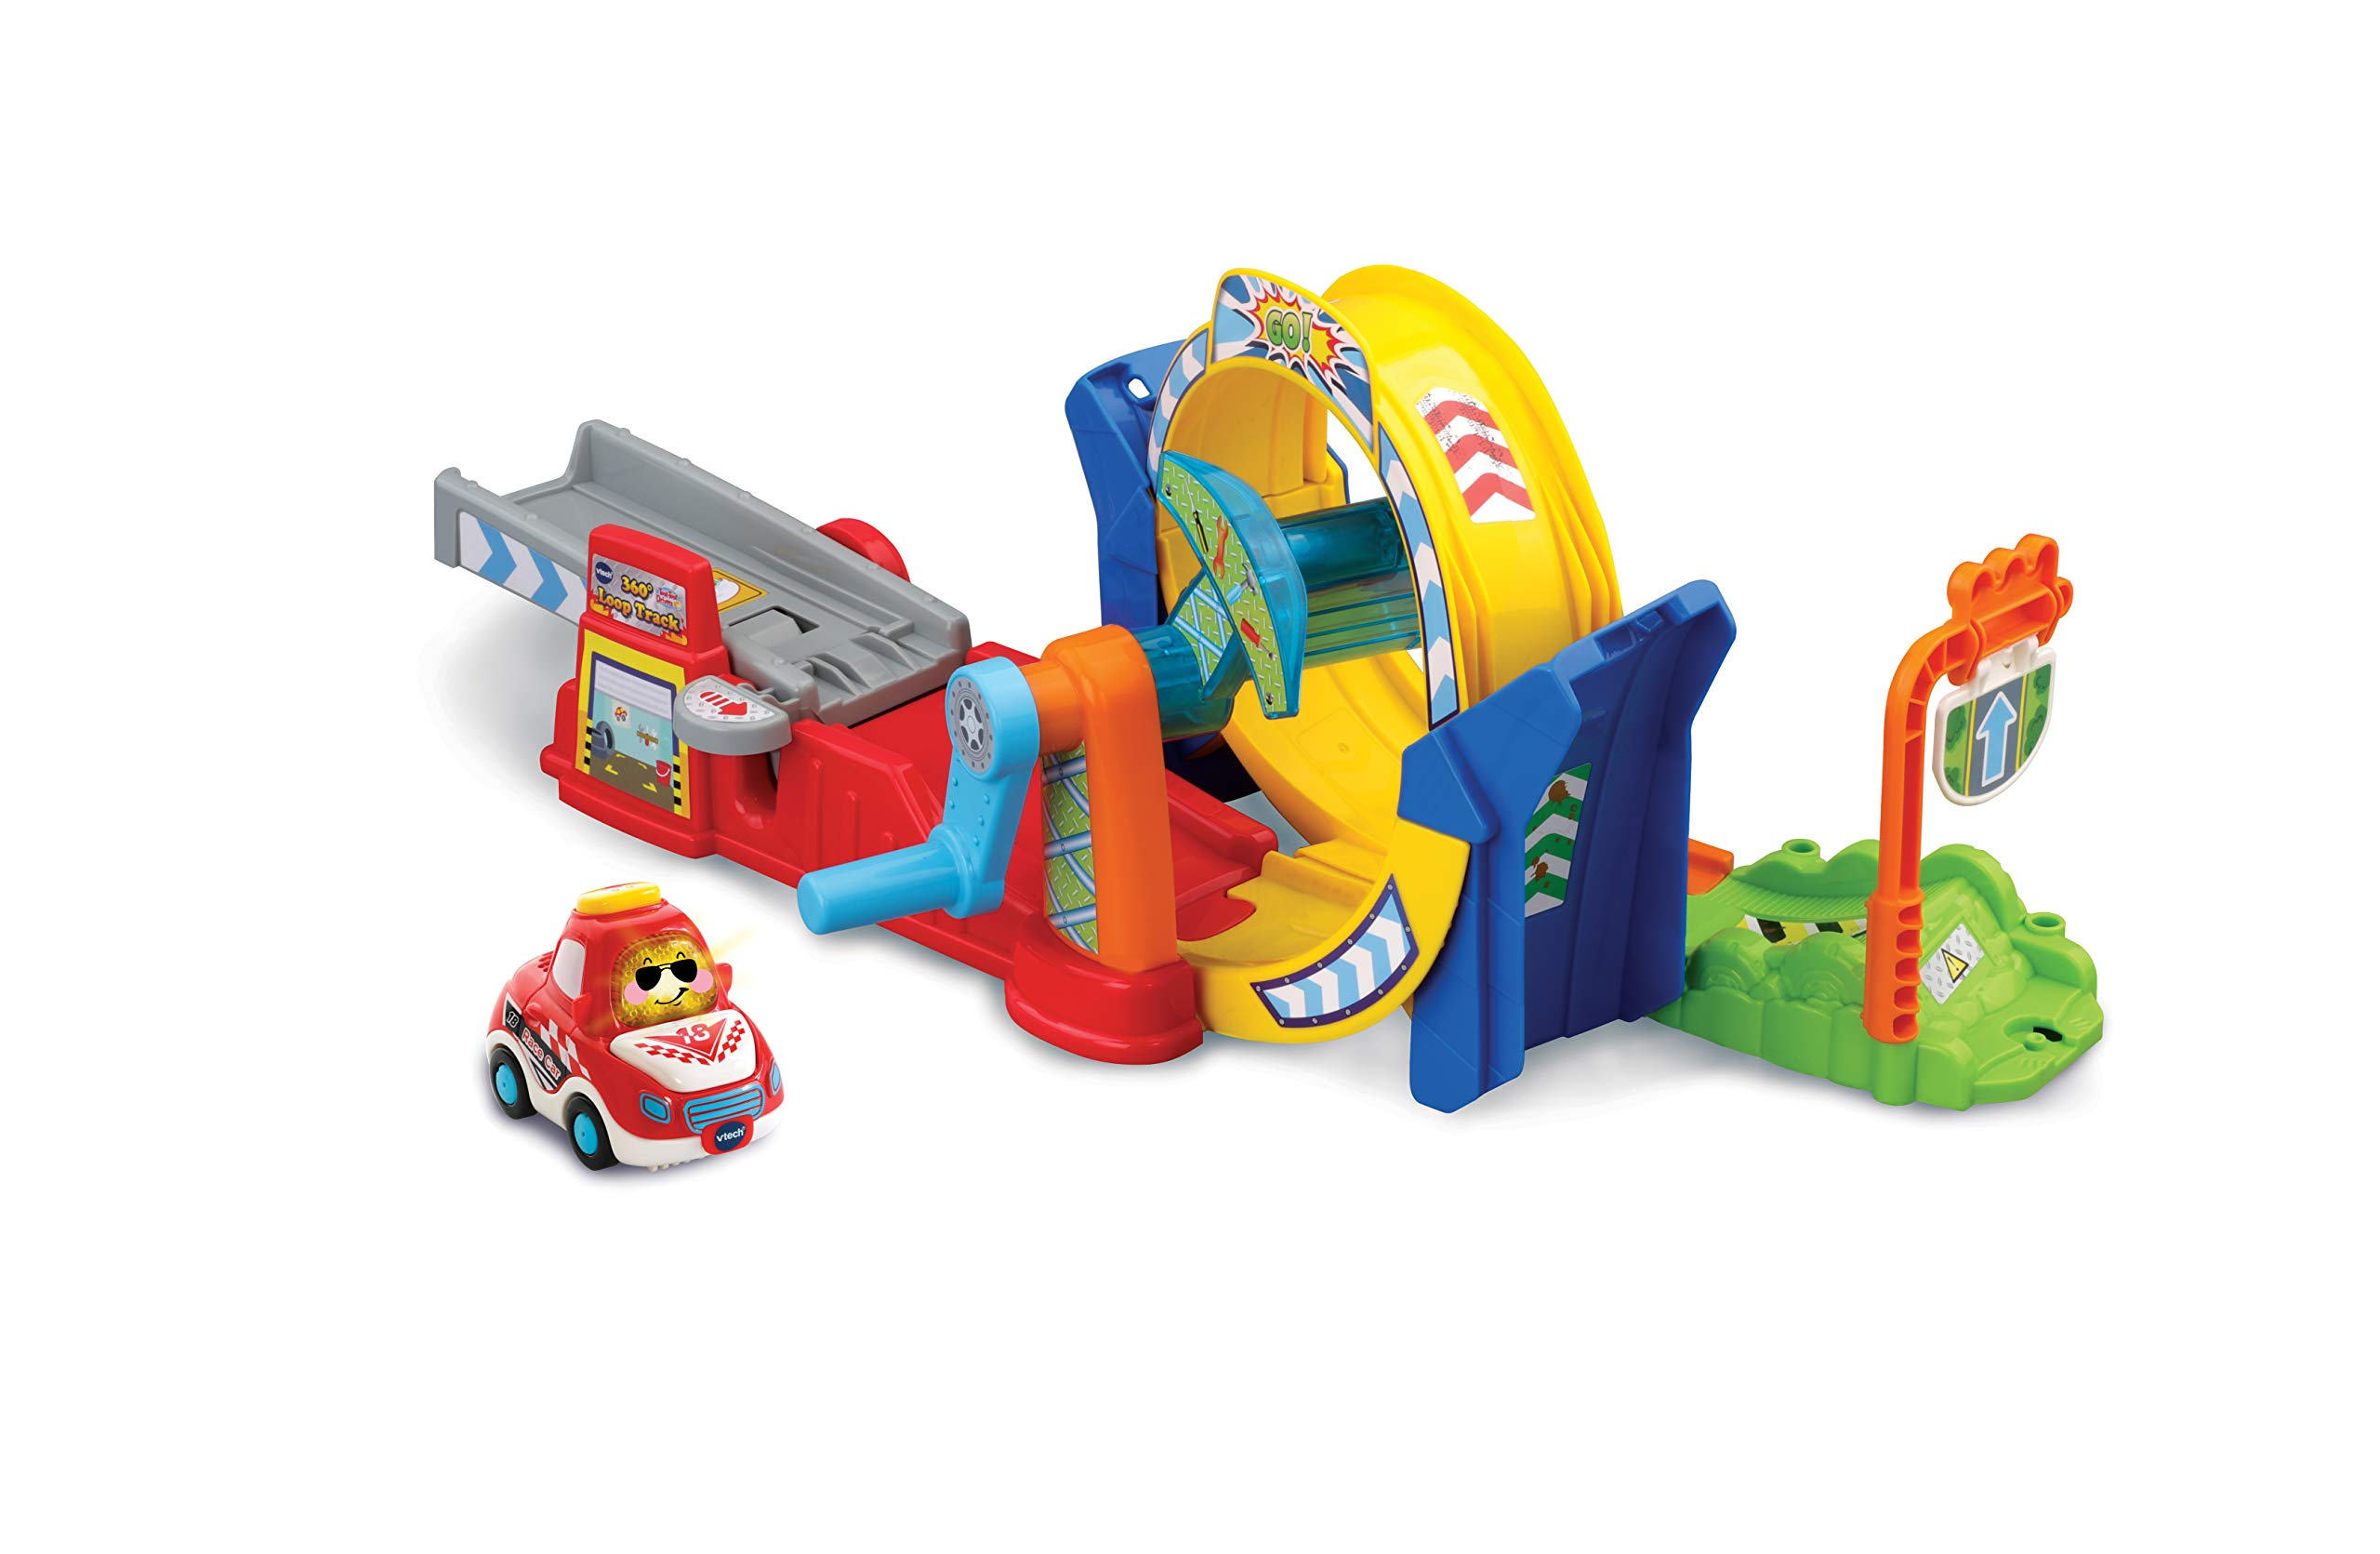 VTech Toot-Toot Drivers 360 Loop Track, Toy Car racing Track for Boys and Girls, Car Tracks for Kids with Lights and Sounds, Musical Toy Race Track for Children Aged 1 to 5 Years